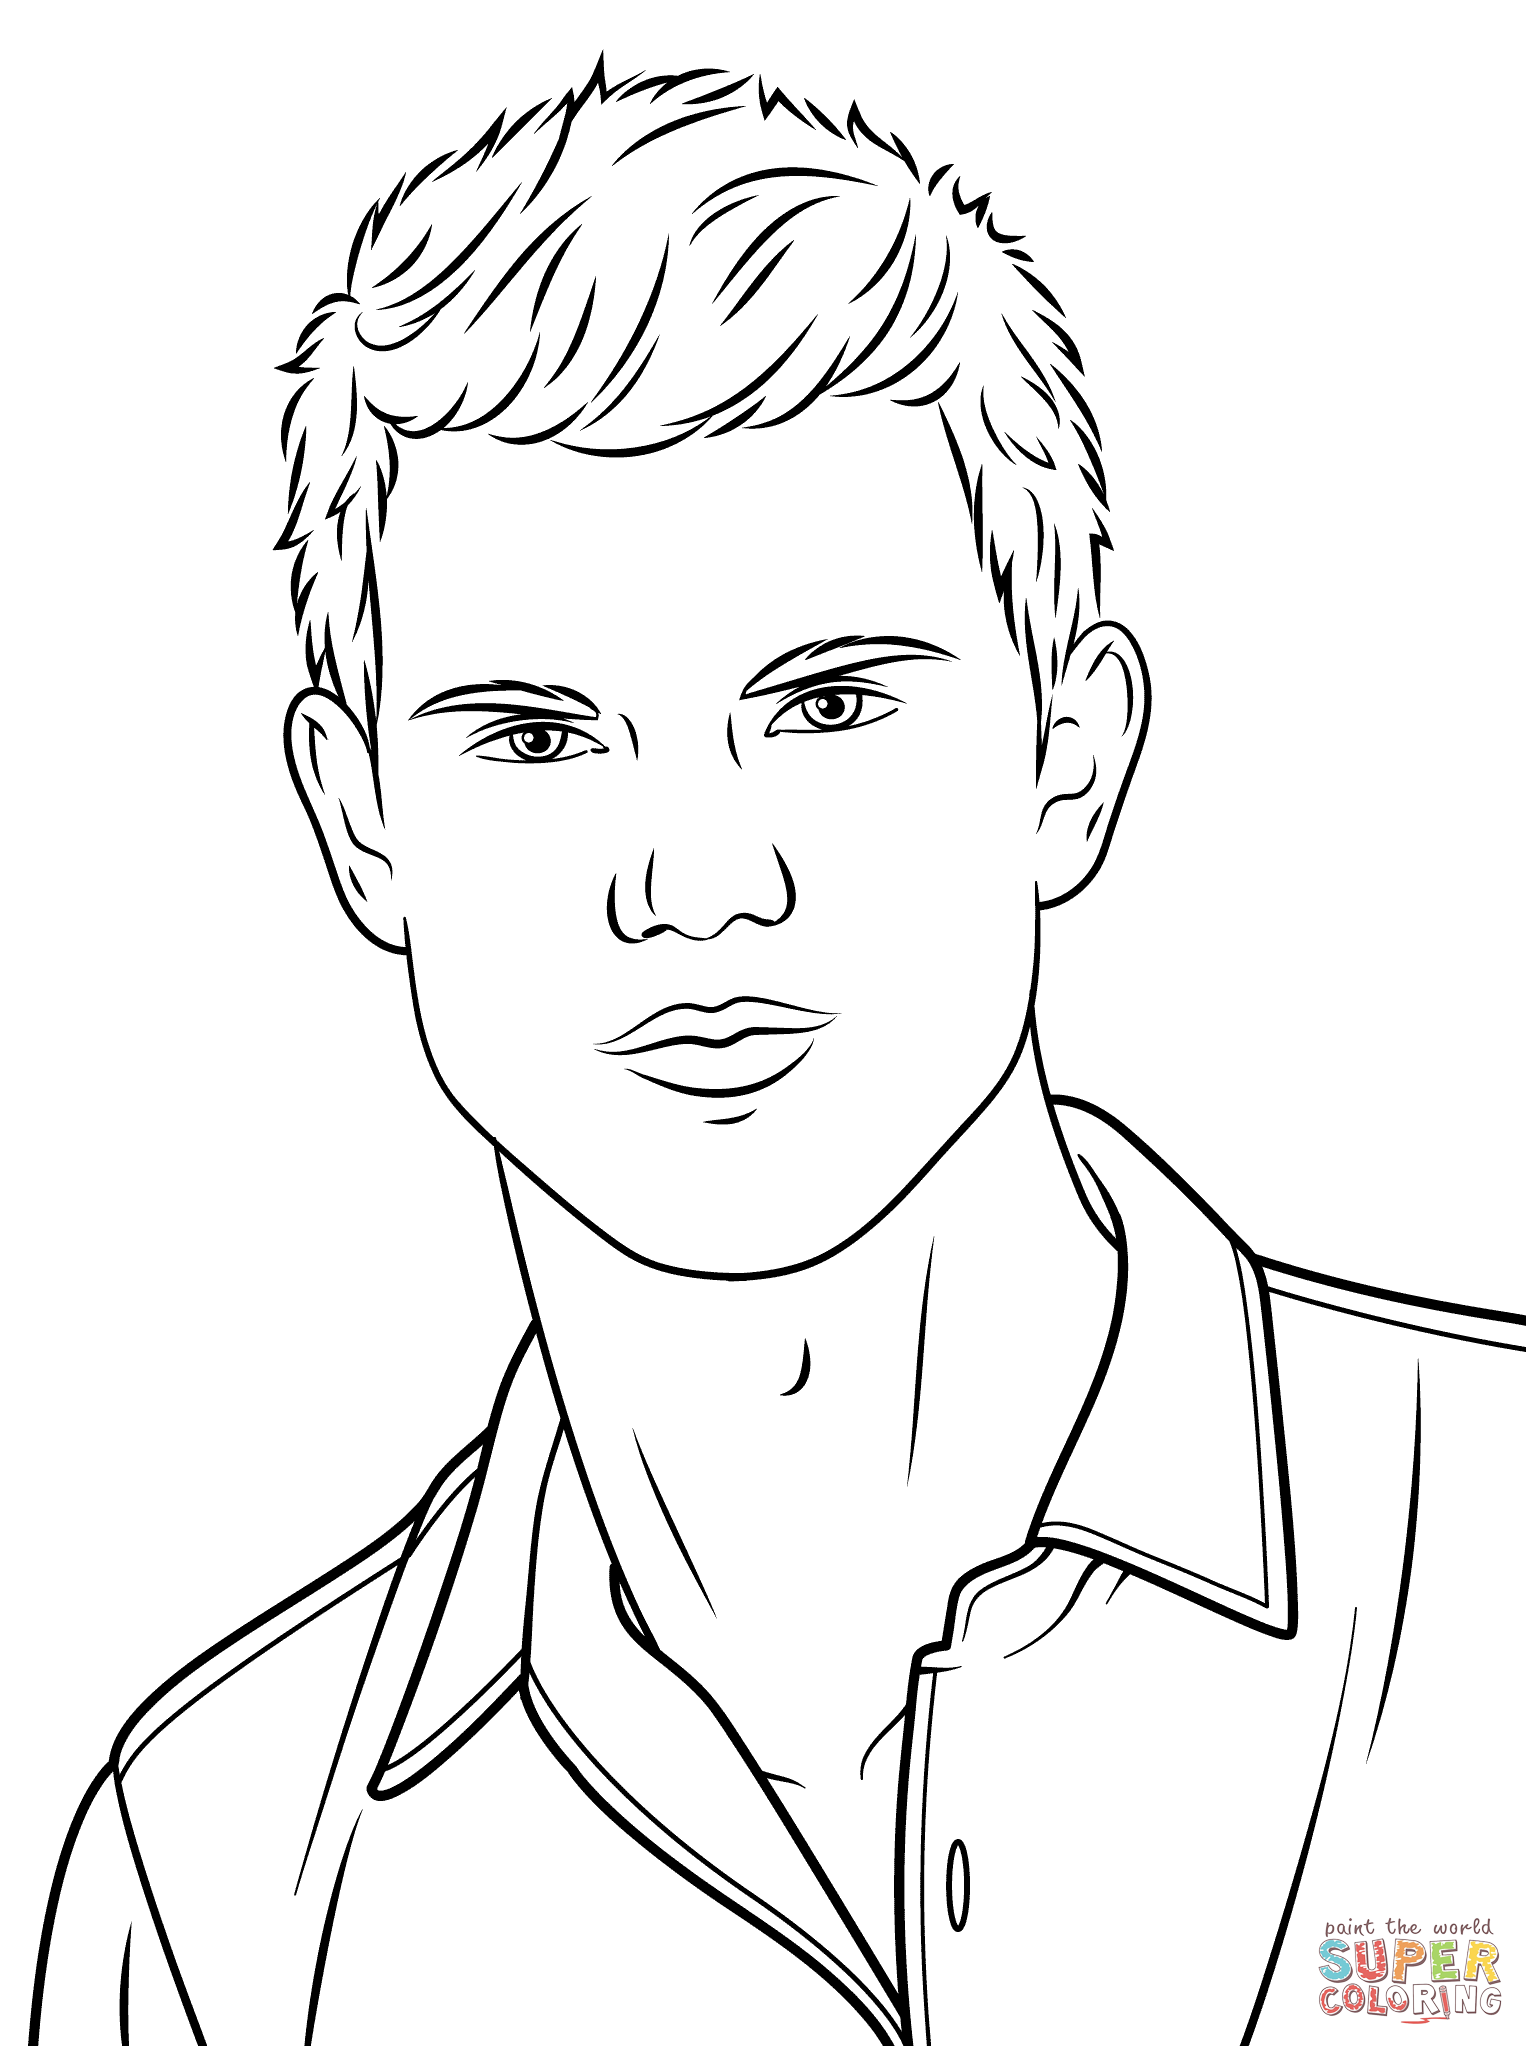 Taylor Swift Coloring Page | Free Printable Coloring Pages ...